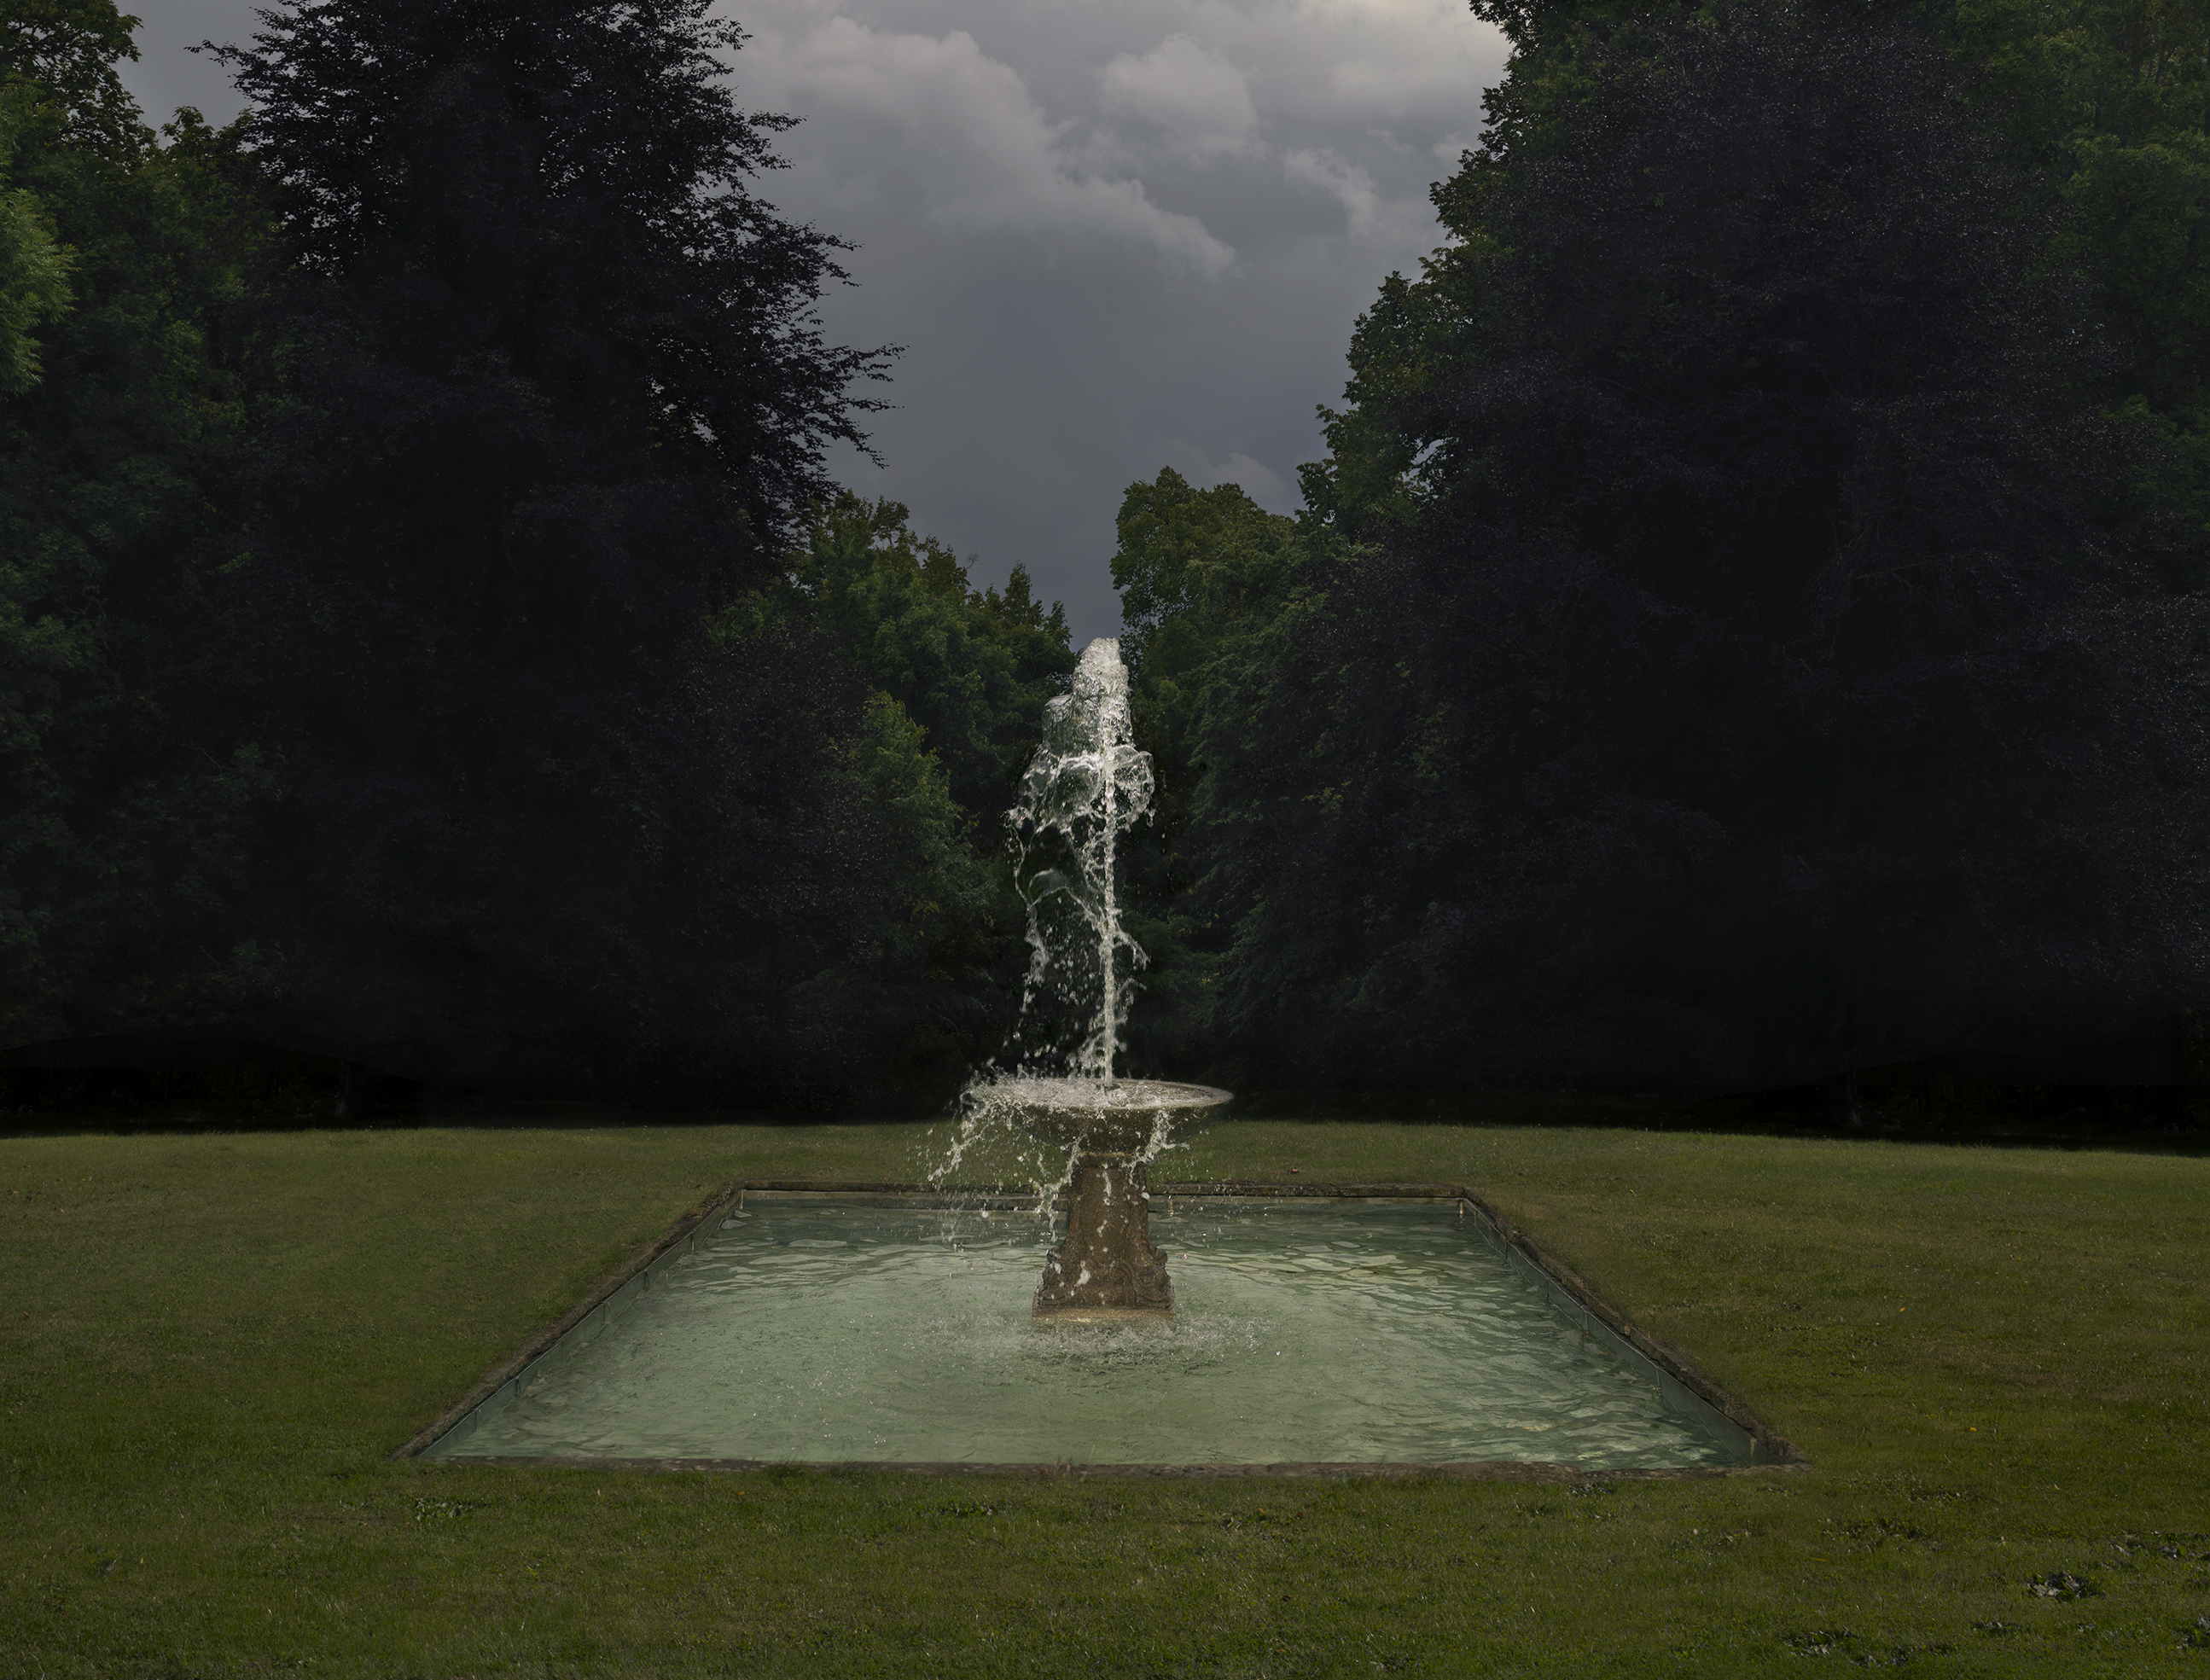 Fountain, 2017, C-print siliconemounted on plexi, 87 x 114 cm